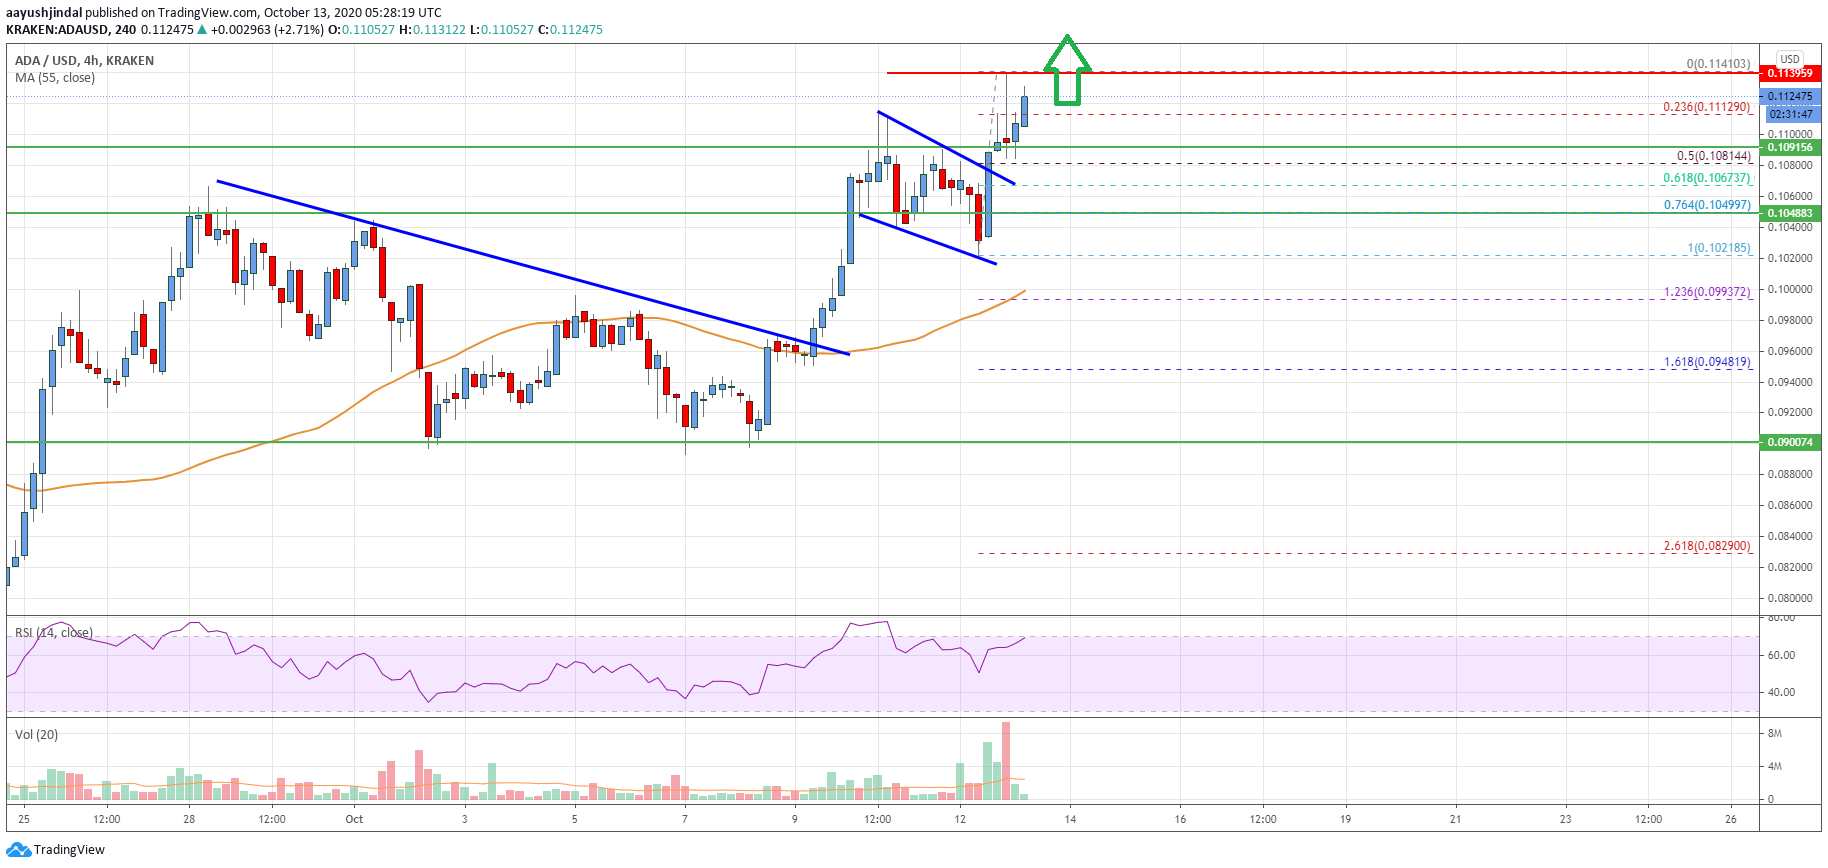 Charted: Cardano (ADA) Daily Chart Indicates A Significant Bullish Wave